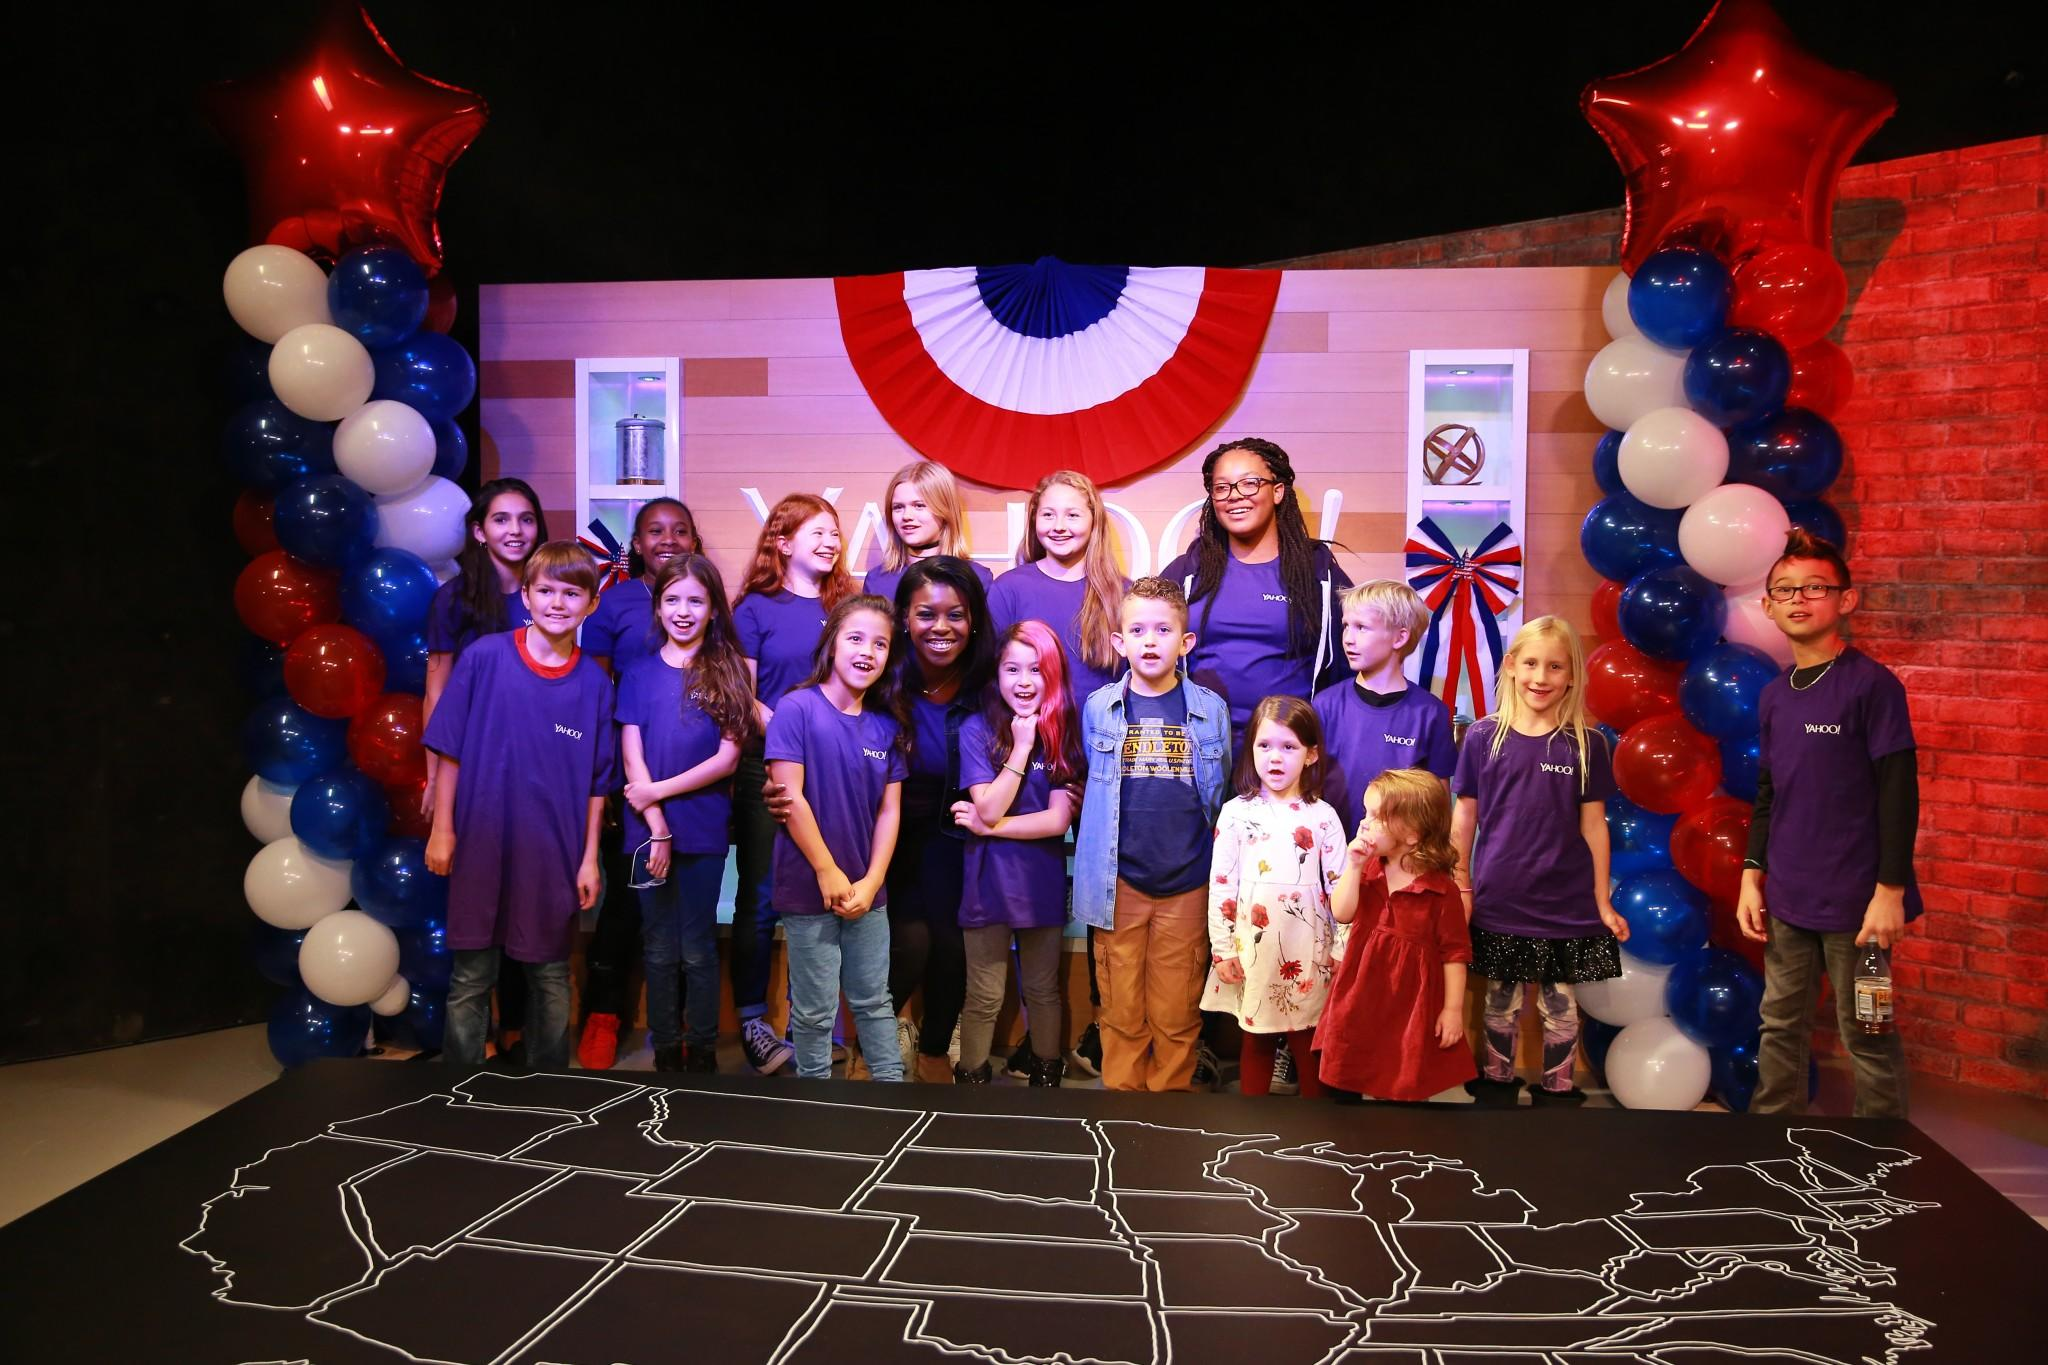 The children of Yahoo staff members and their guests pose for a photo at the Yahoo News Studios on Tuesday, Nov. 8, 2016. (Photo: Gordon Donovan/Yahoo News)